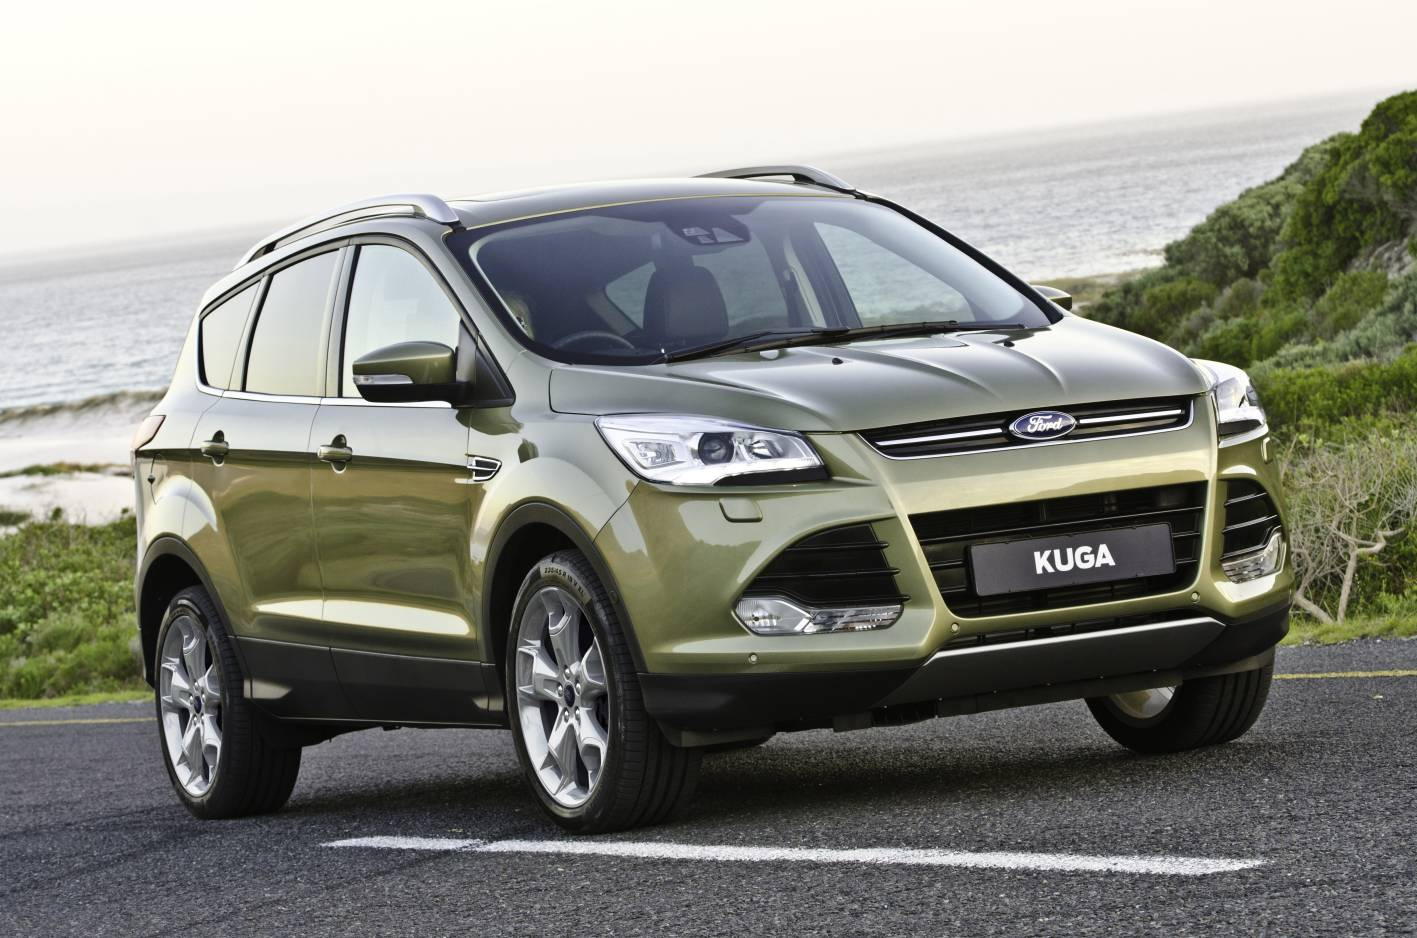 2013 ford kuga review photos caradvice. Black Bedroom Furniture Sets. Home Design Ideas